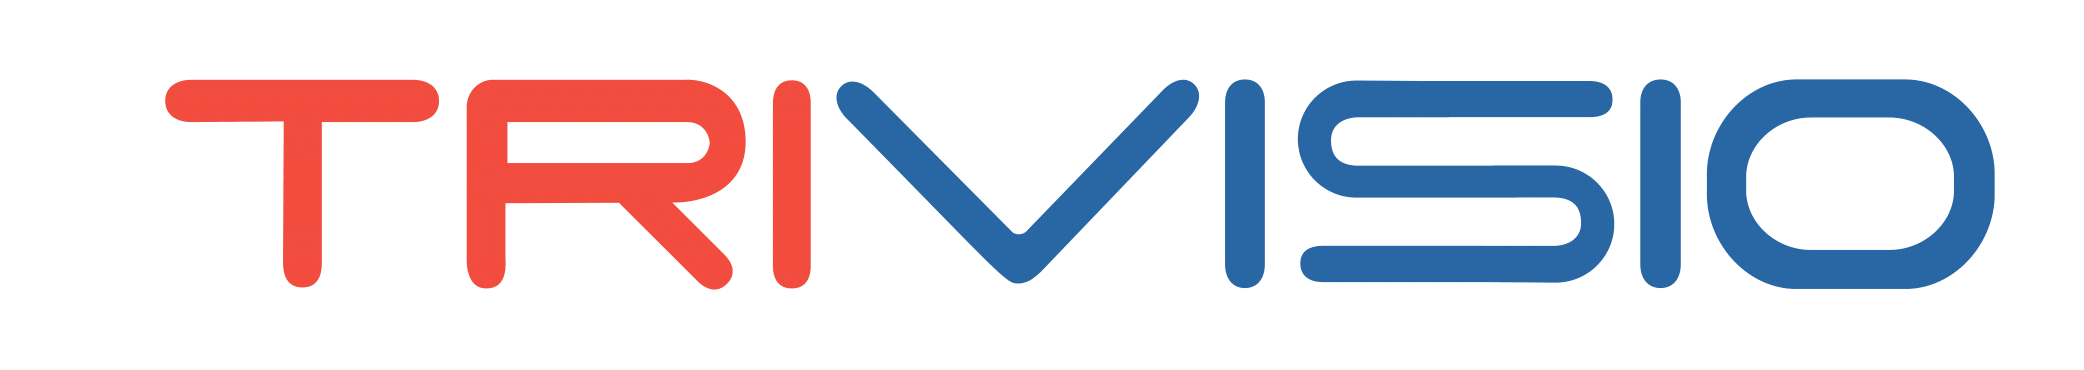 trivisio_logo_vectorized-1